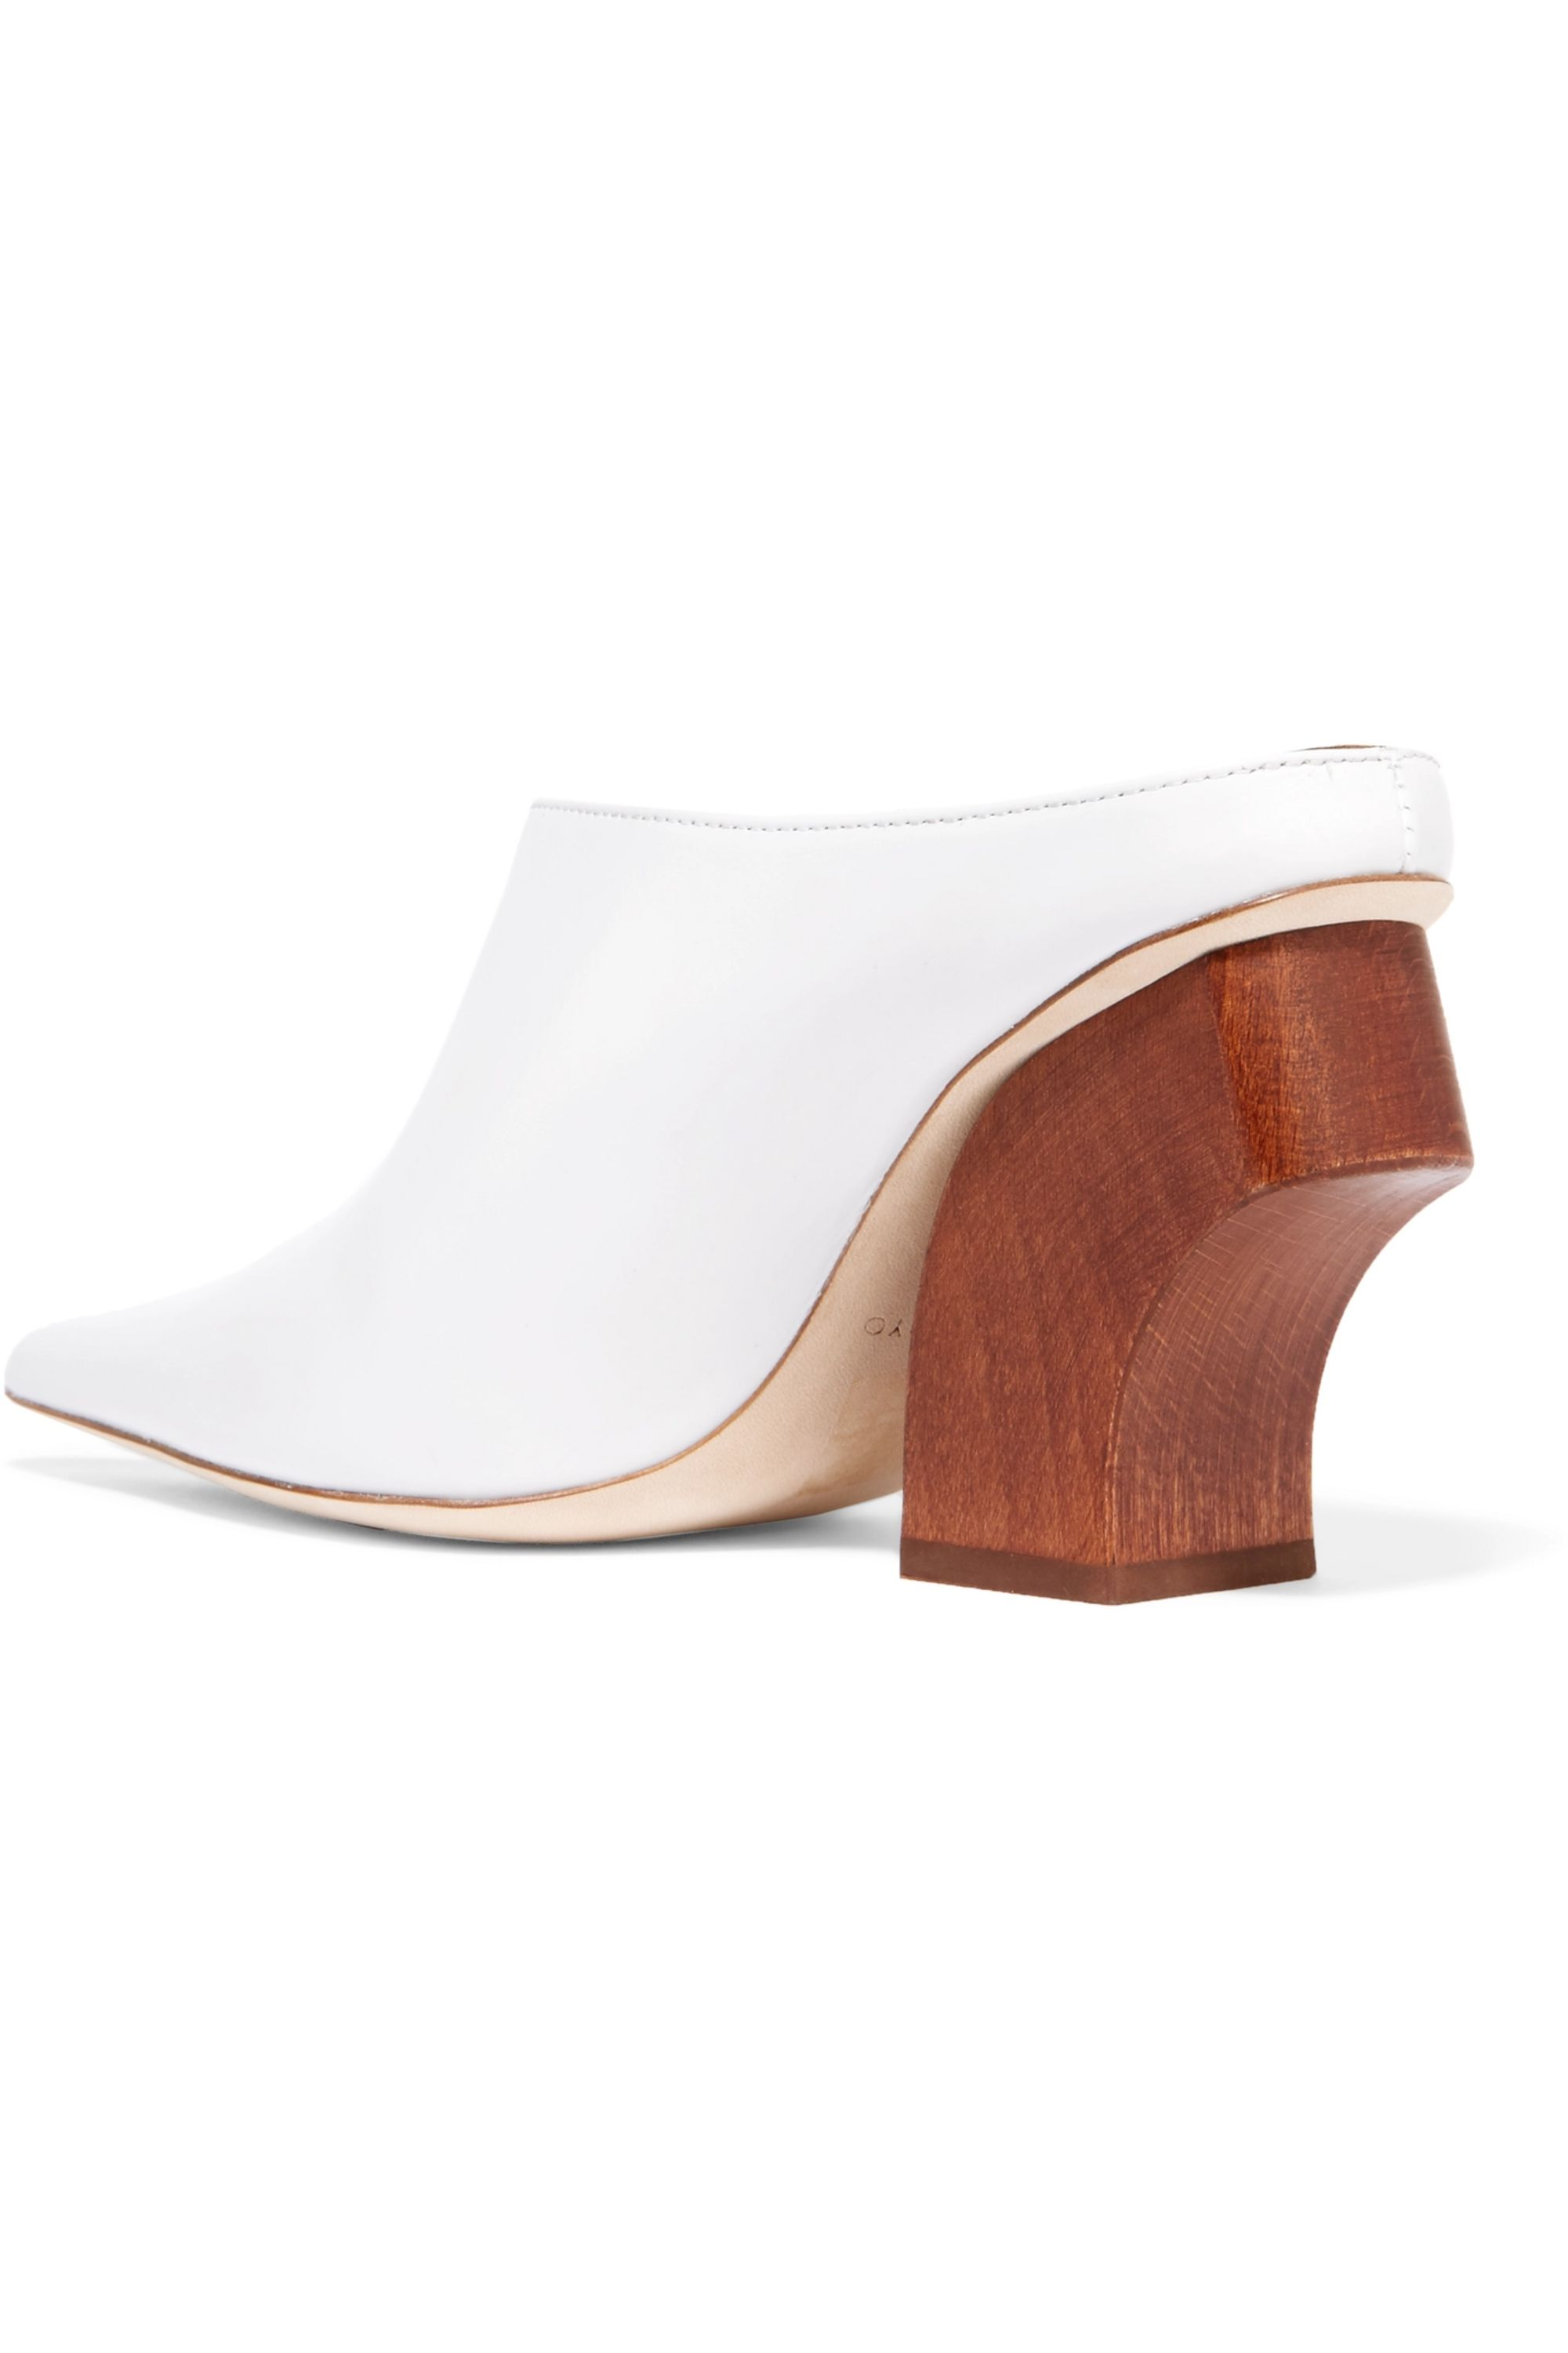 REJINA PYO Yasmin leather mules